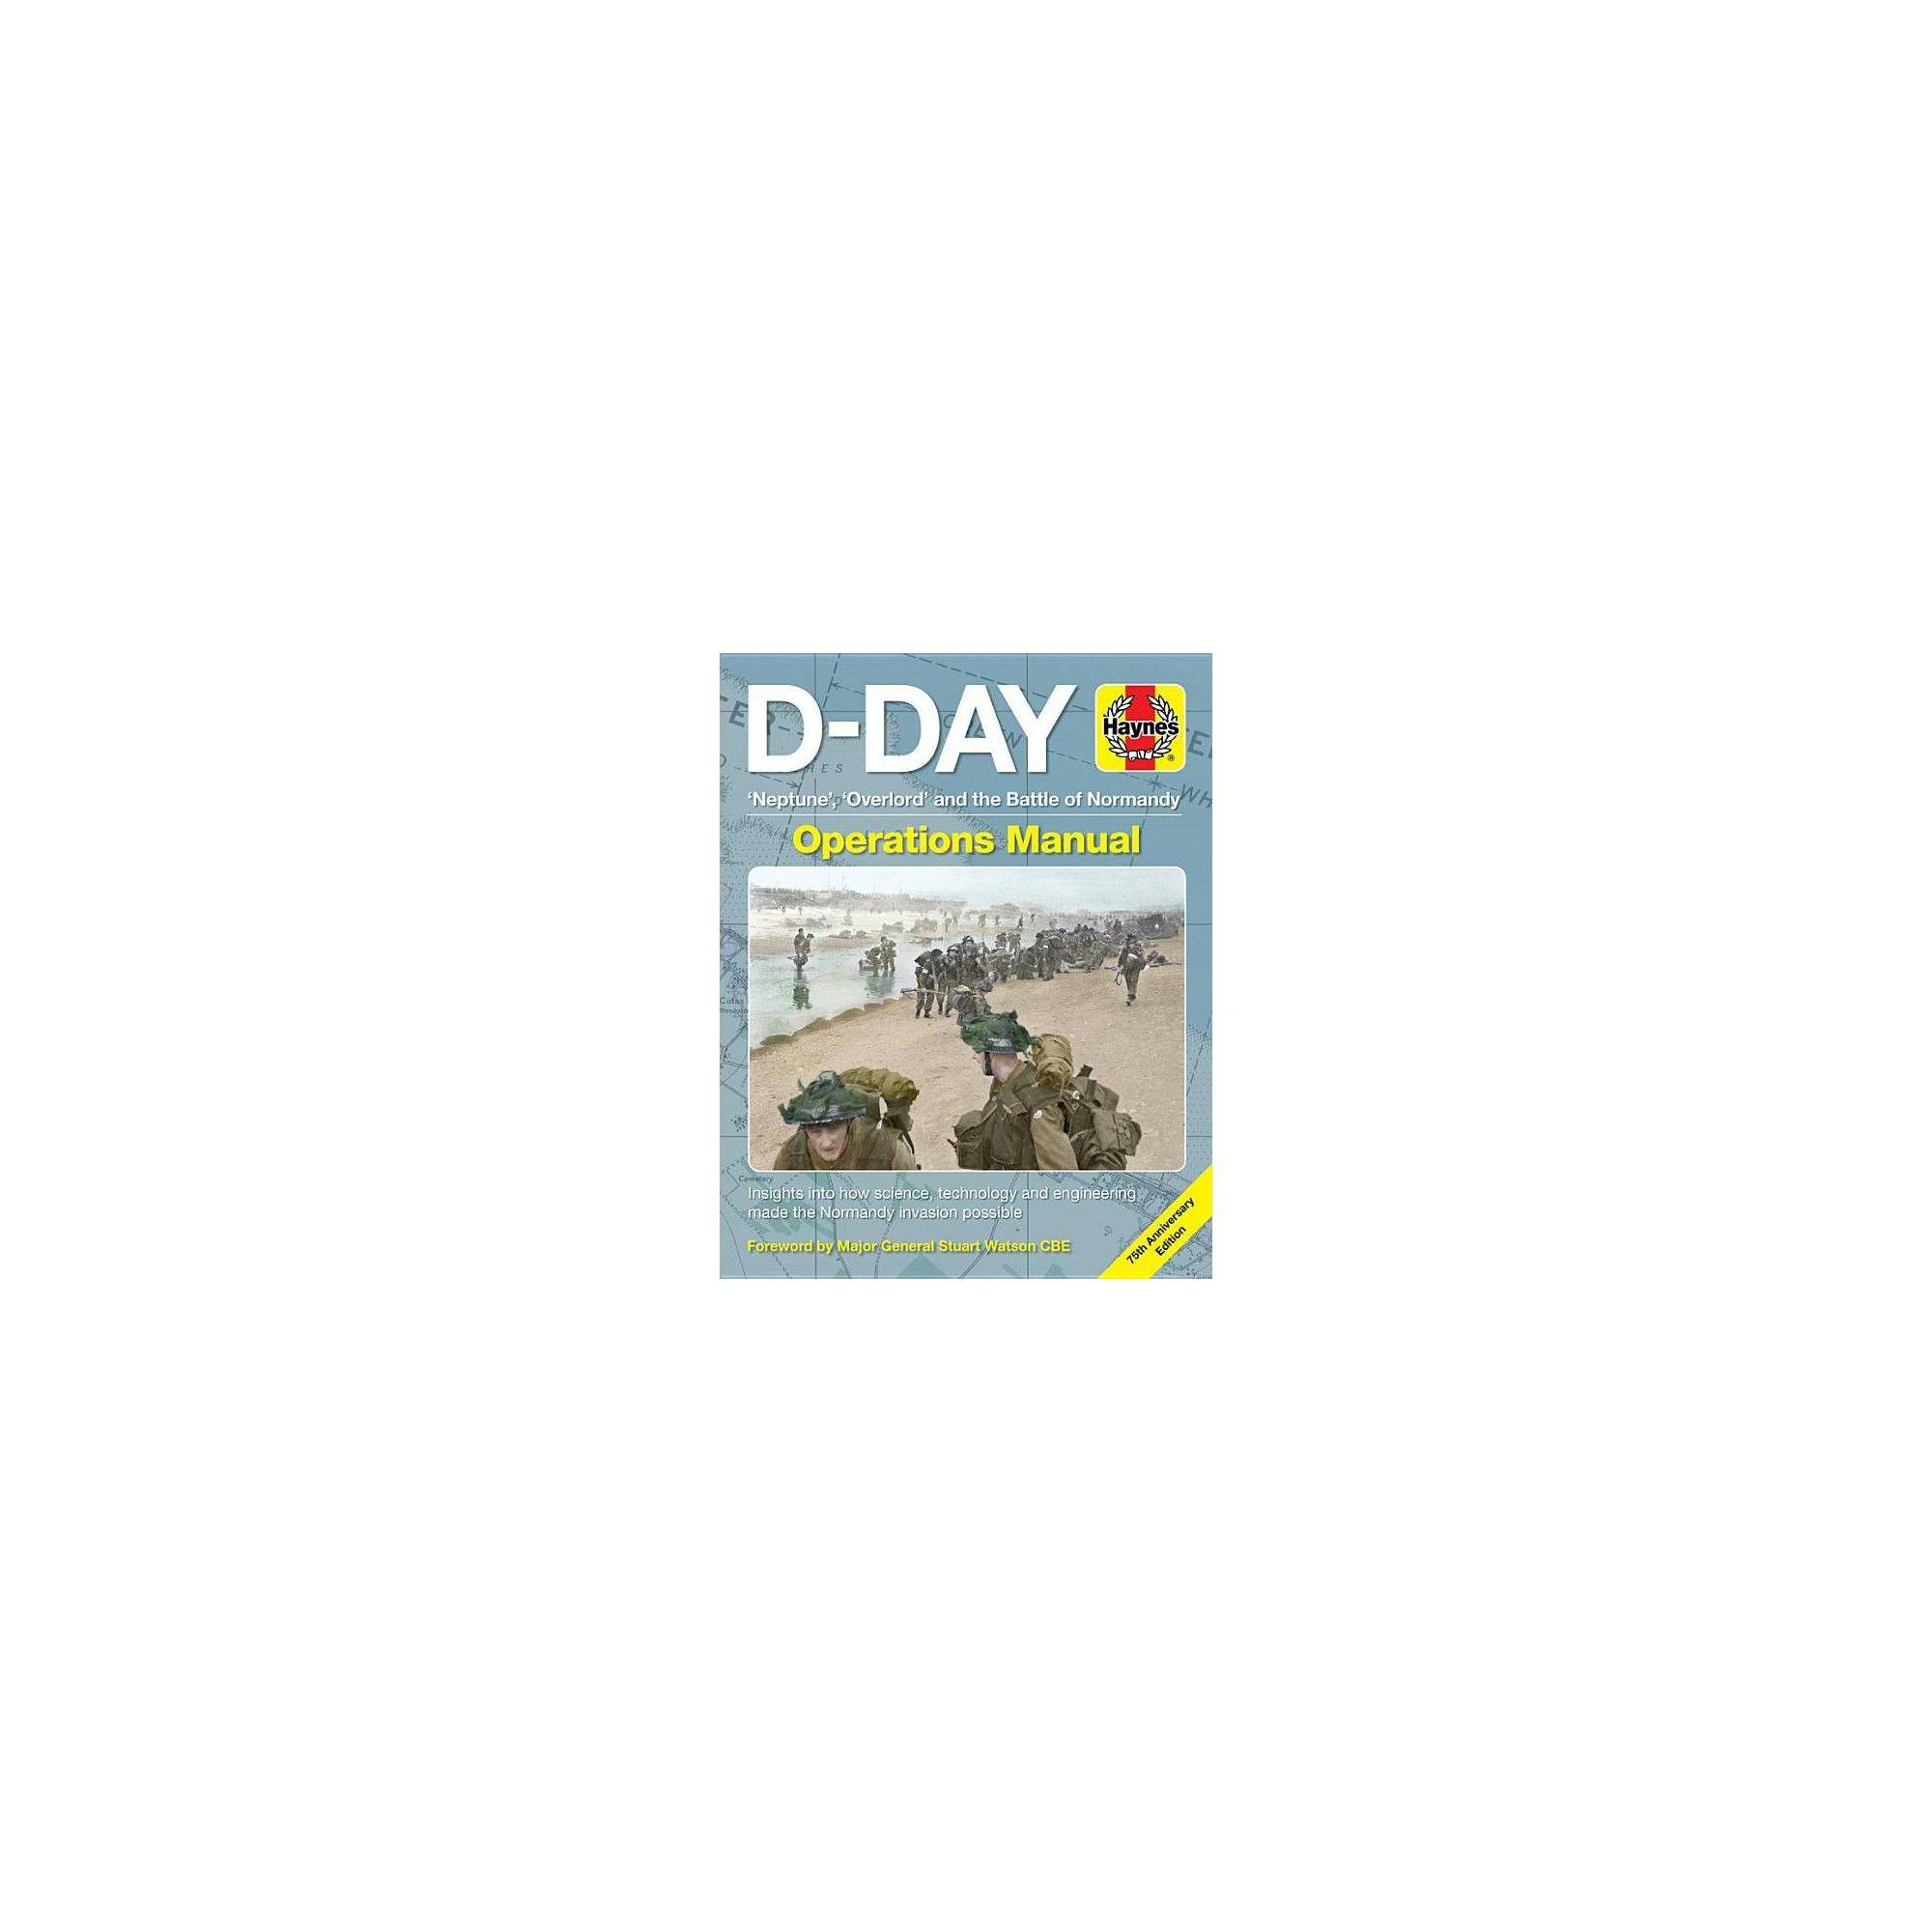 Haynes D-Day Operations Manual Science /& Technology Insights Normandy Invasion